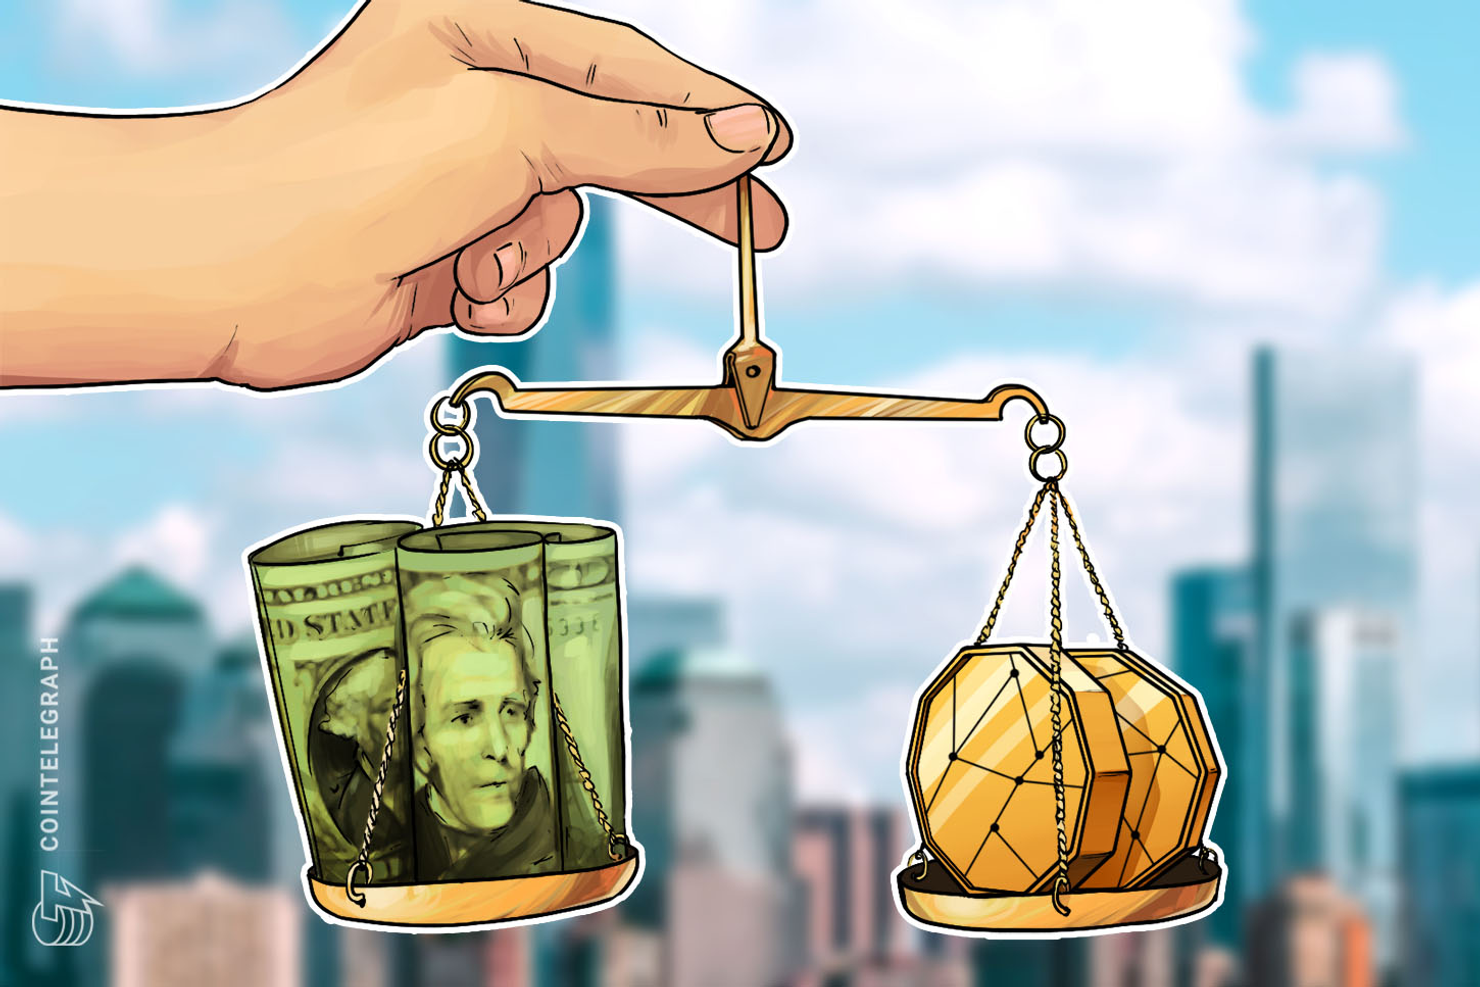 St. Louis Fed Chief Pessimistic on Crypto as Non-Uniform Currency